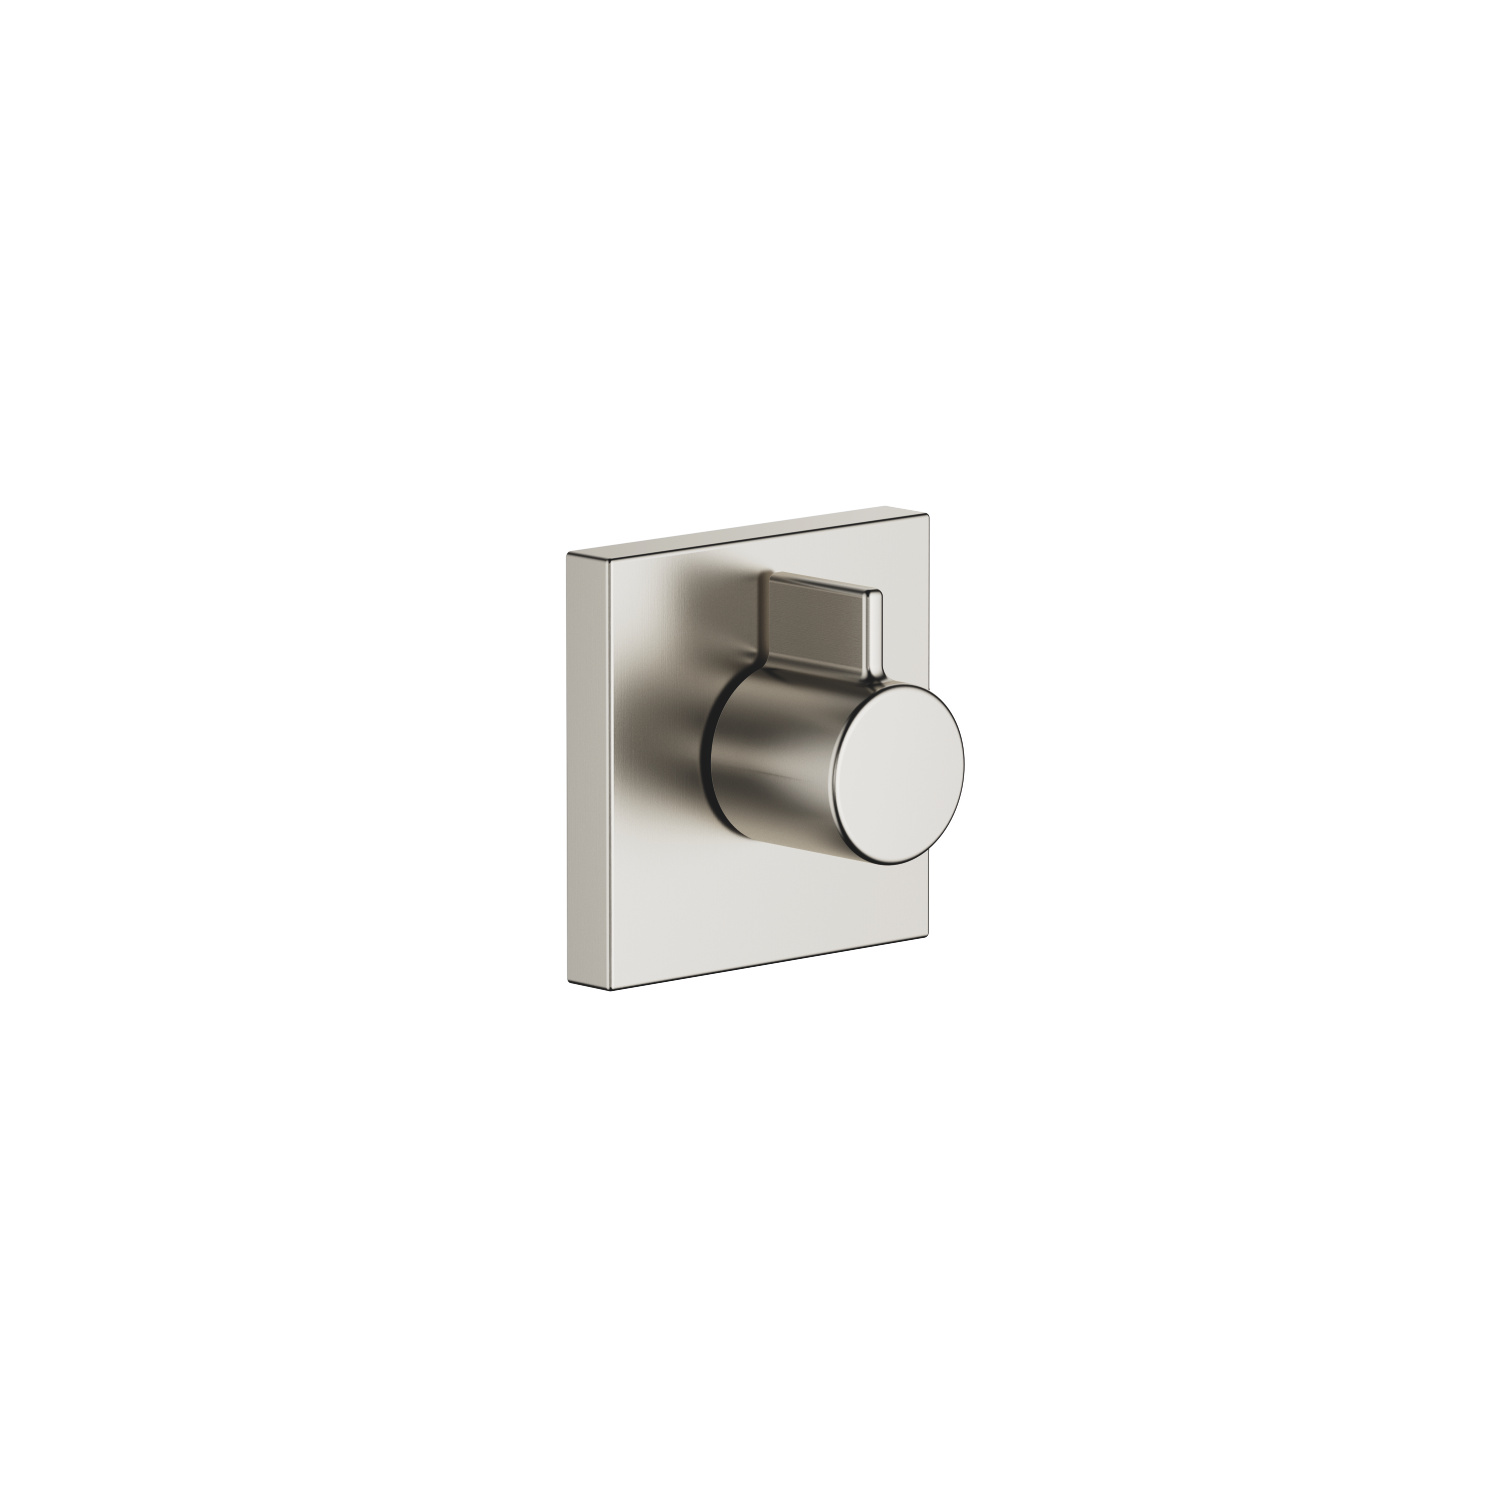 "Wall valve anti-clockwise closing 3/4"" - platinum matt"